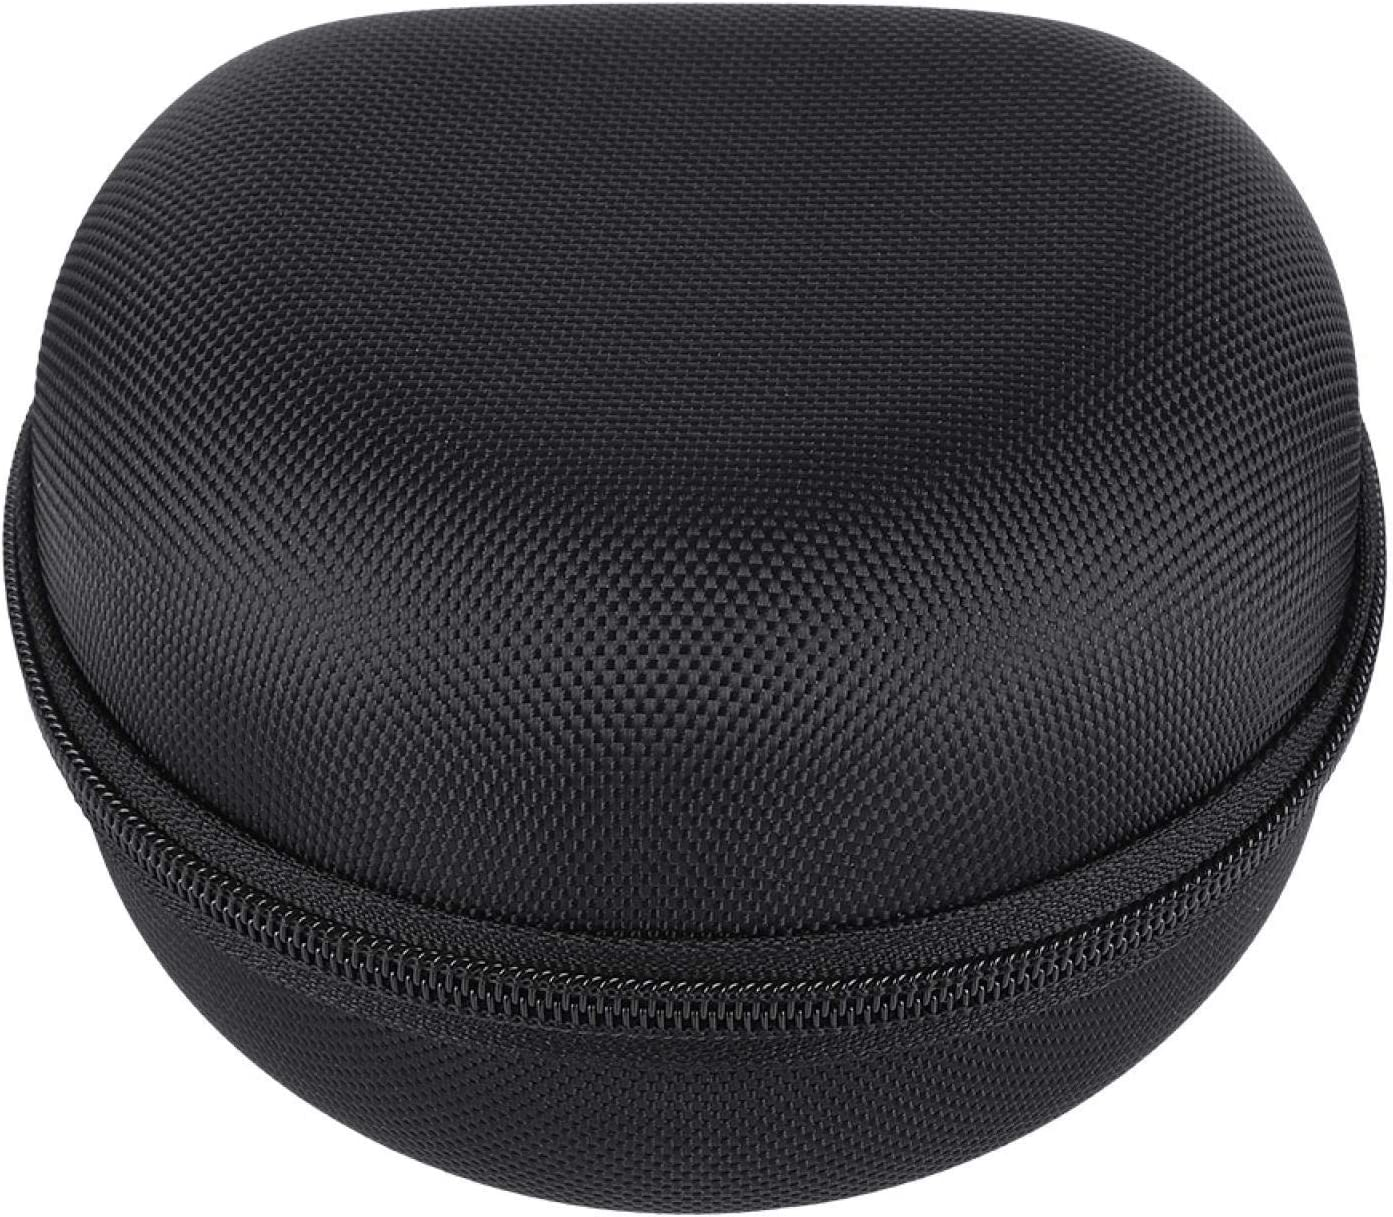 EVTSCAN sale Microphone Protect Pouch OFFicial site Circular Nylon Portable Protec